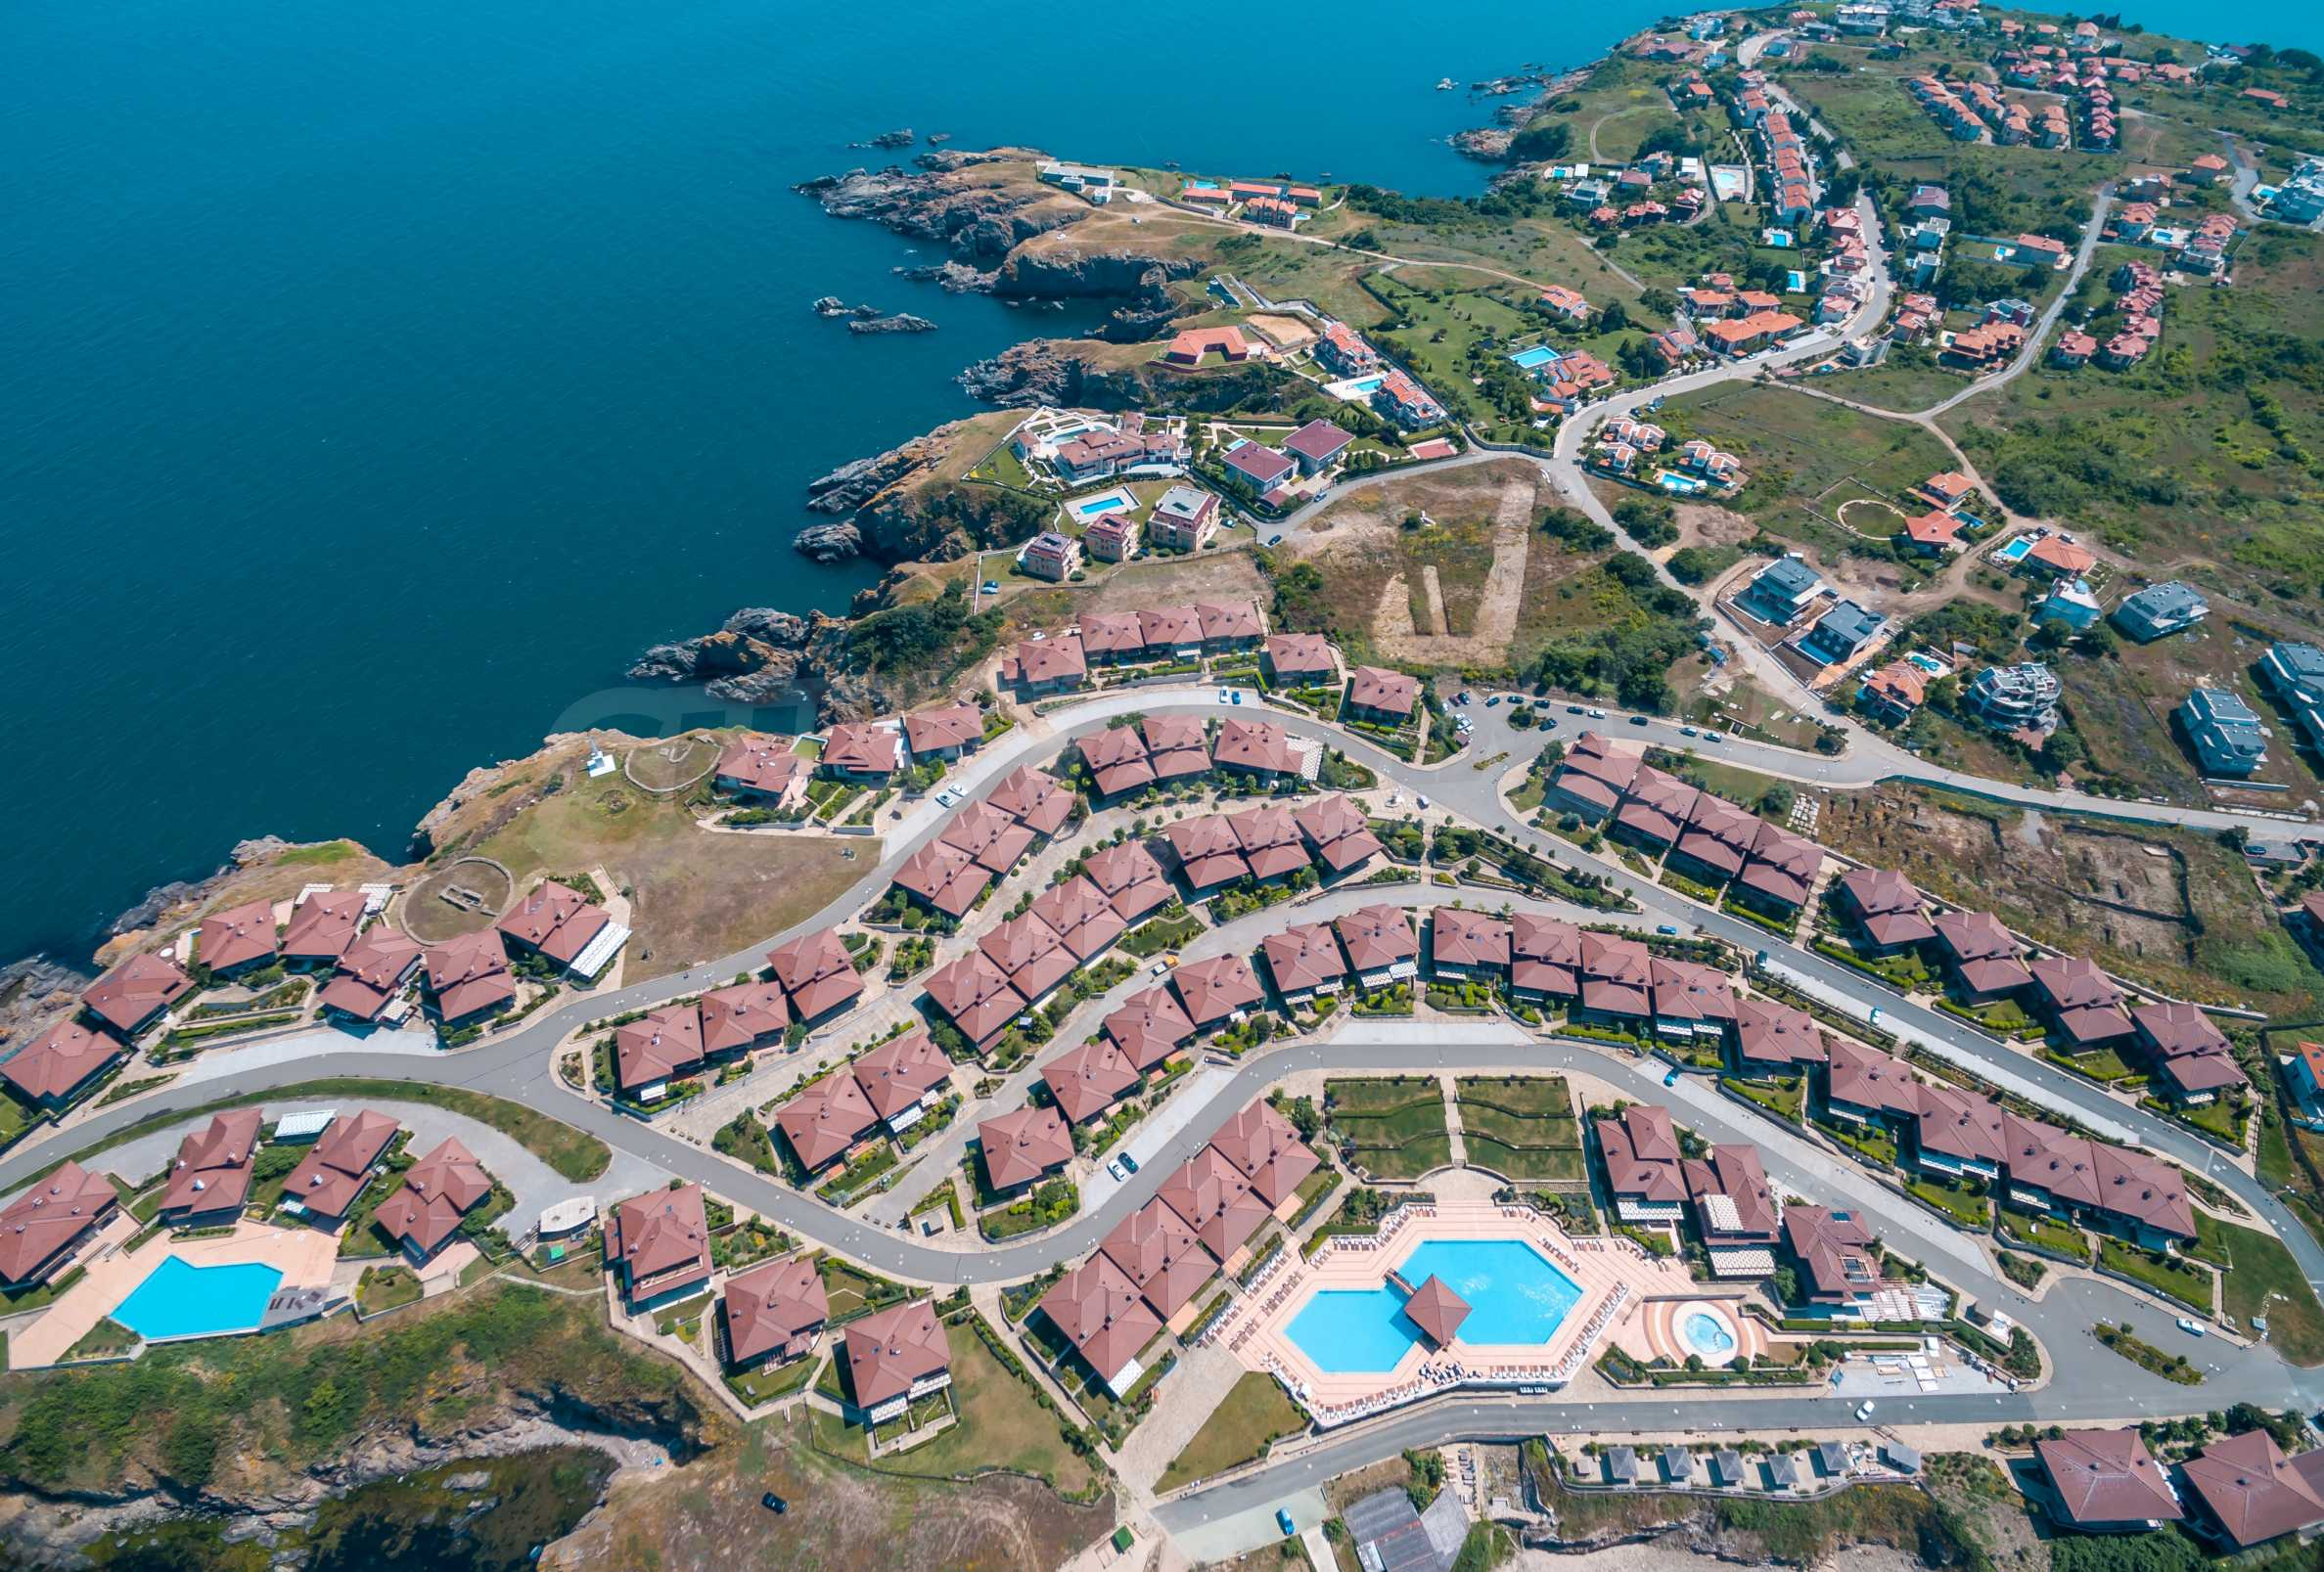 Sozopolis - unique coastal complex of duplex houses and apartments near Sozopol 46